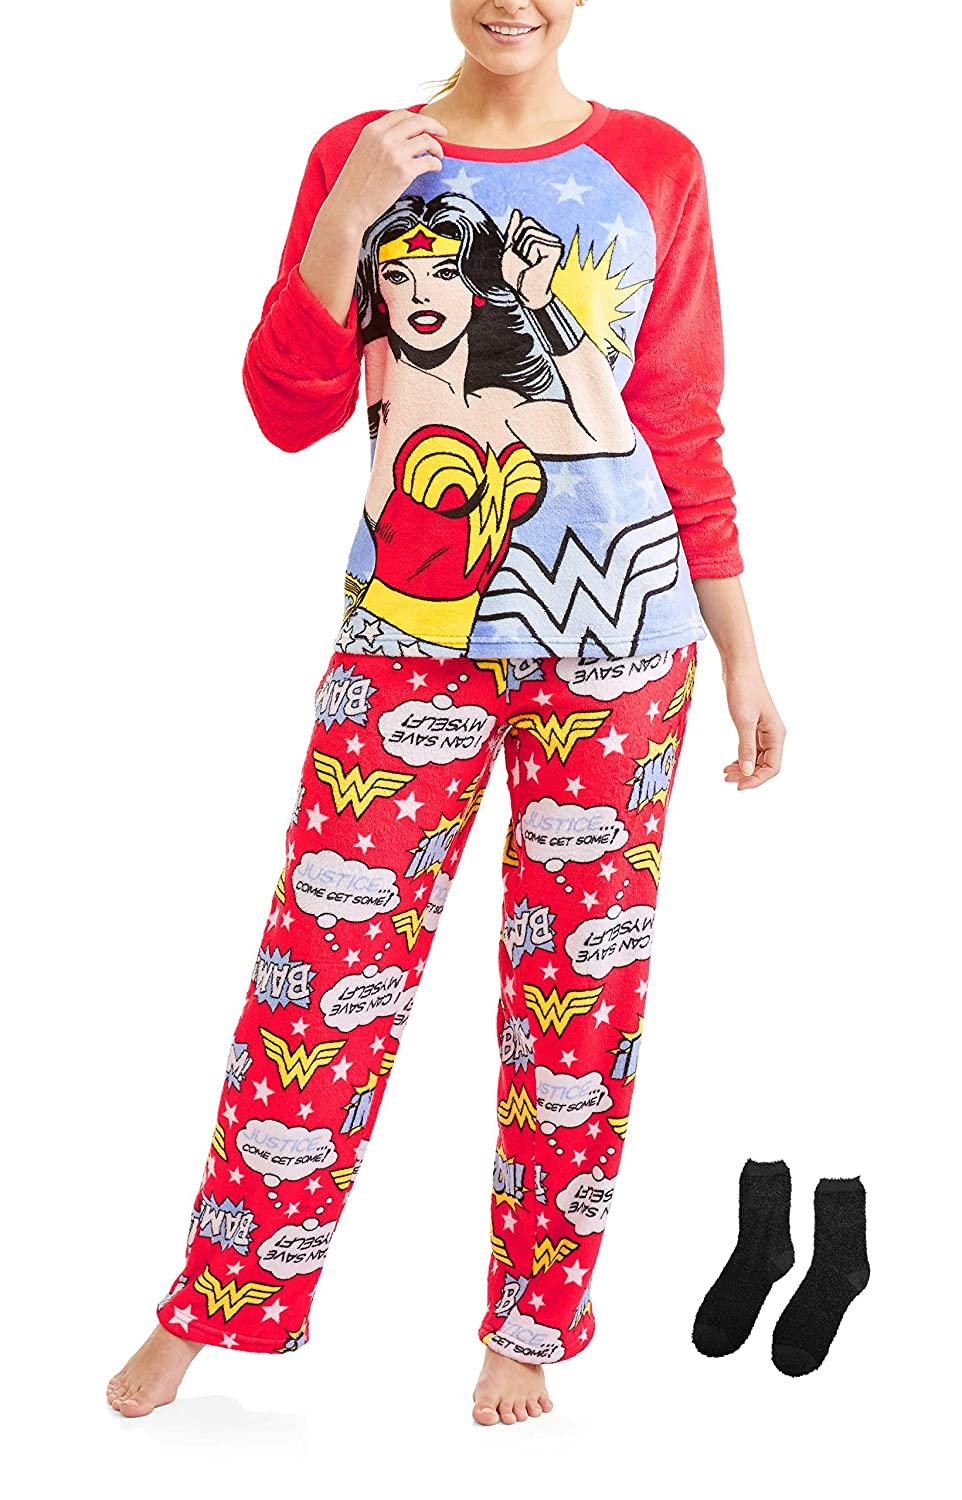 Richard Leeds International Women's Wonder Woman Plush Minky 2 Piece Pajama Set